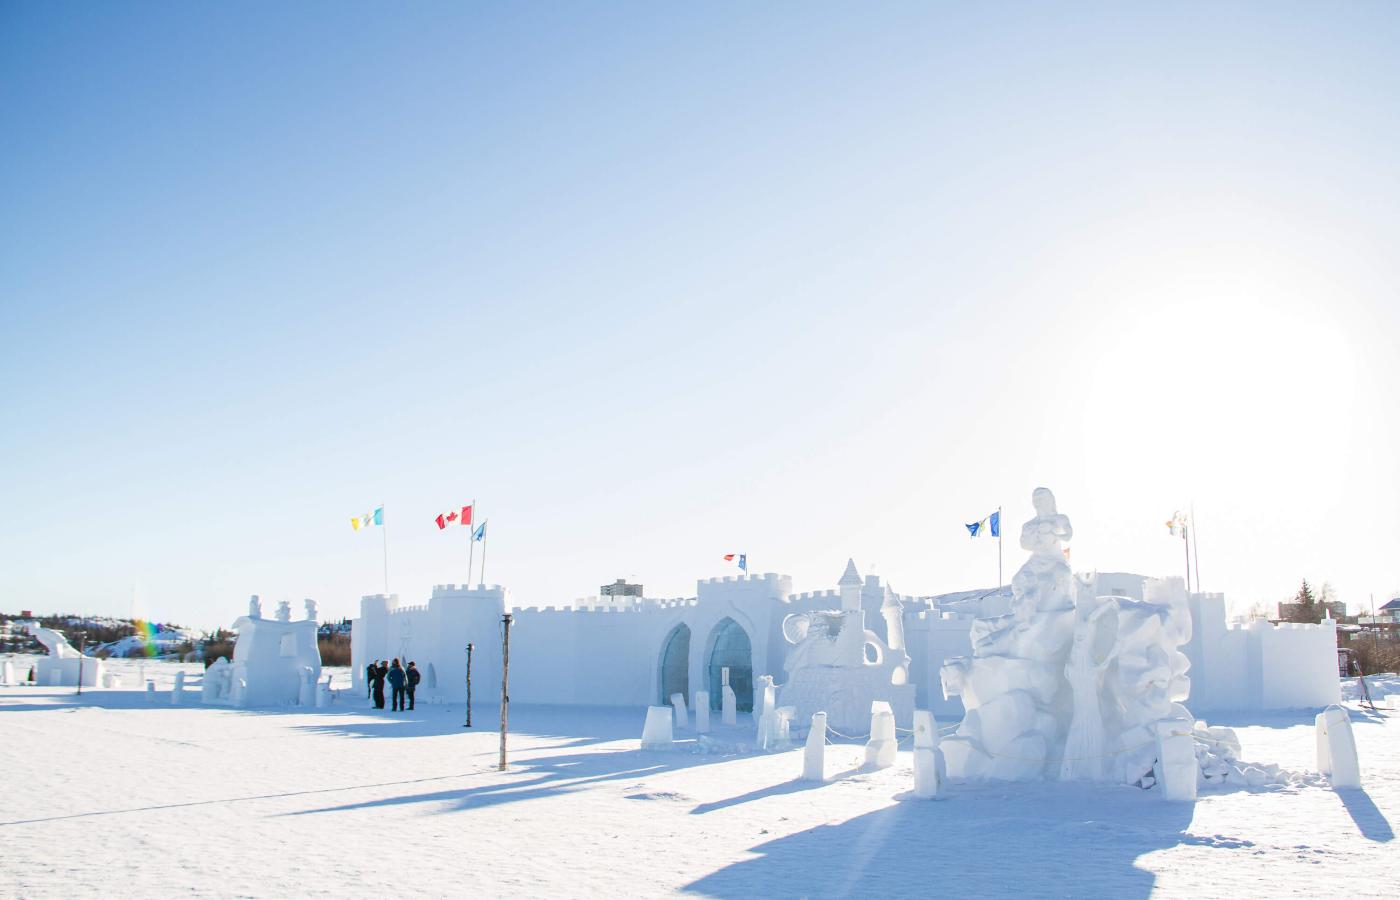 The SnowKing festival in Yellowknife, Northwest Territories